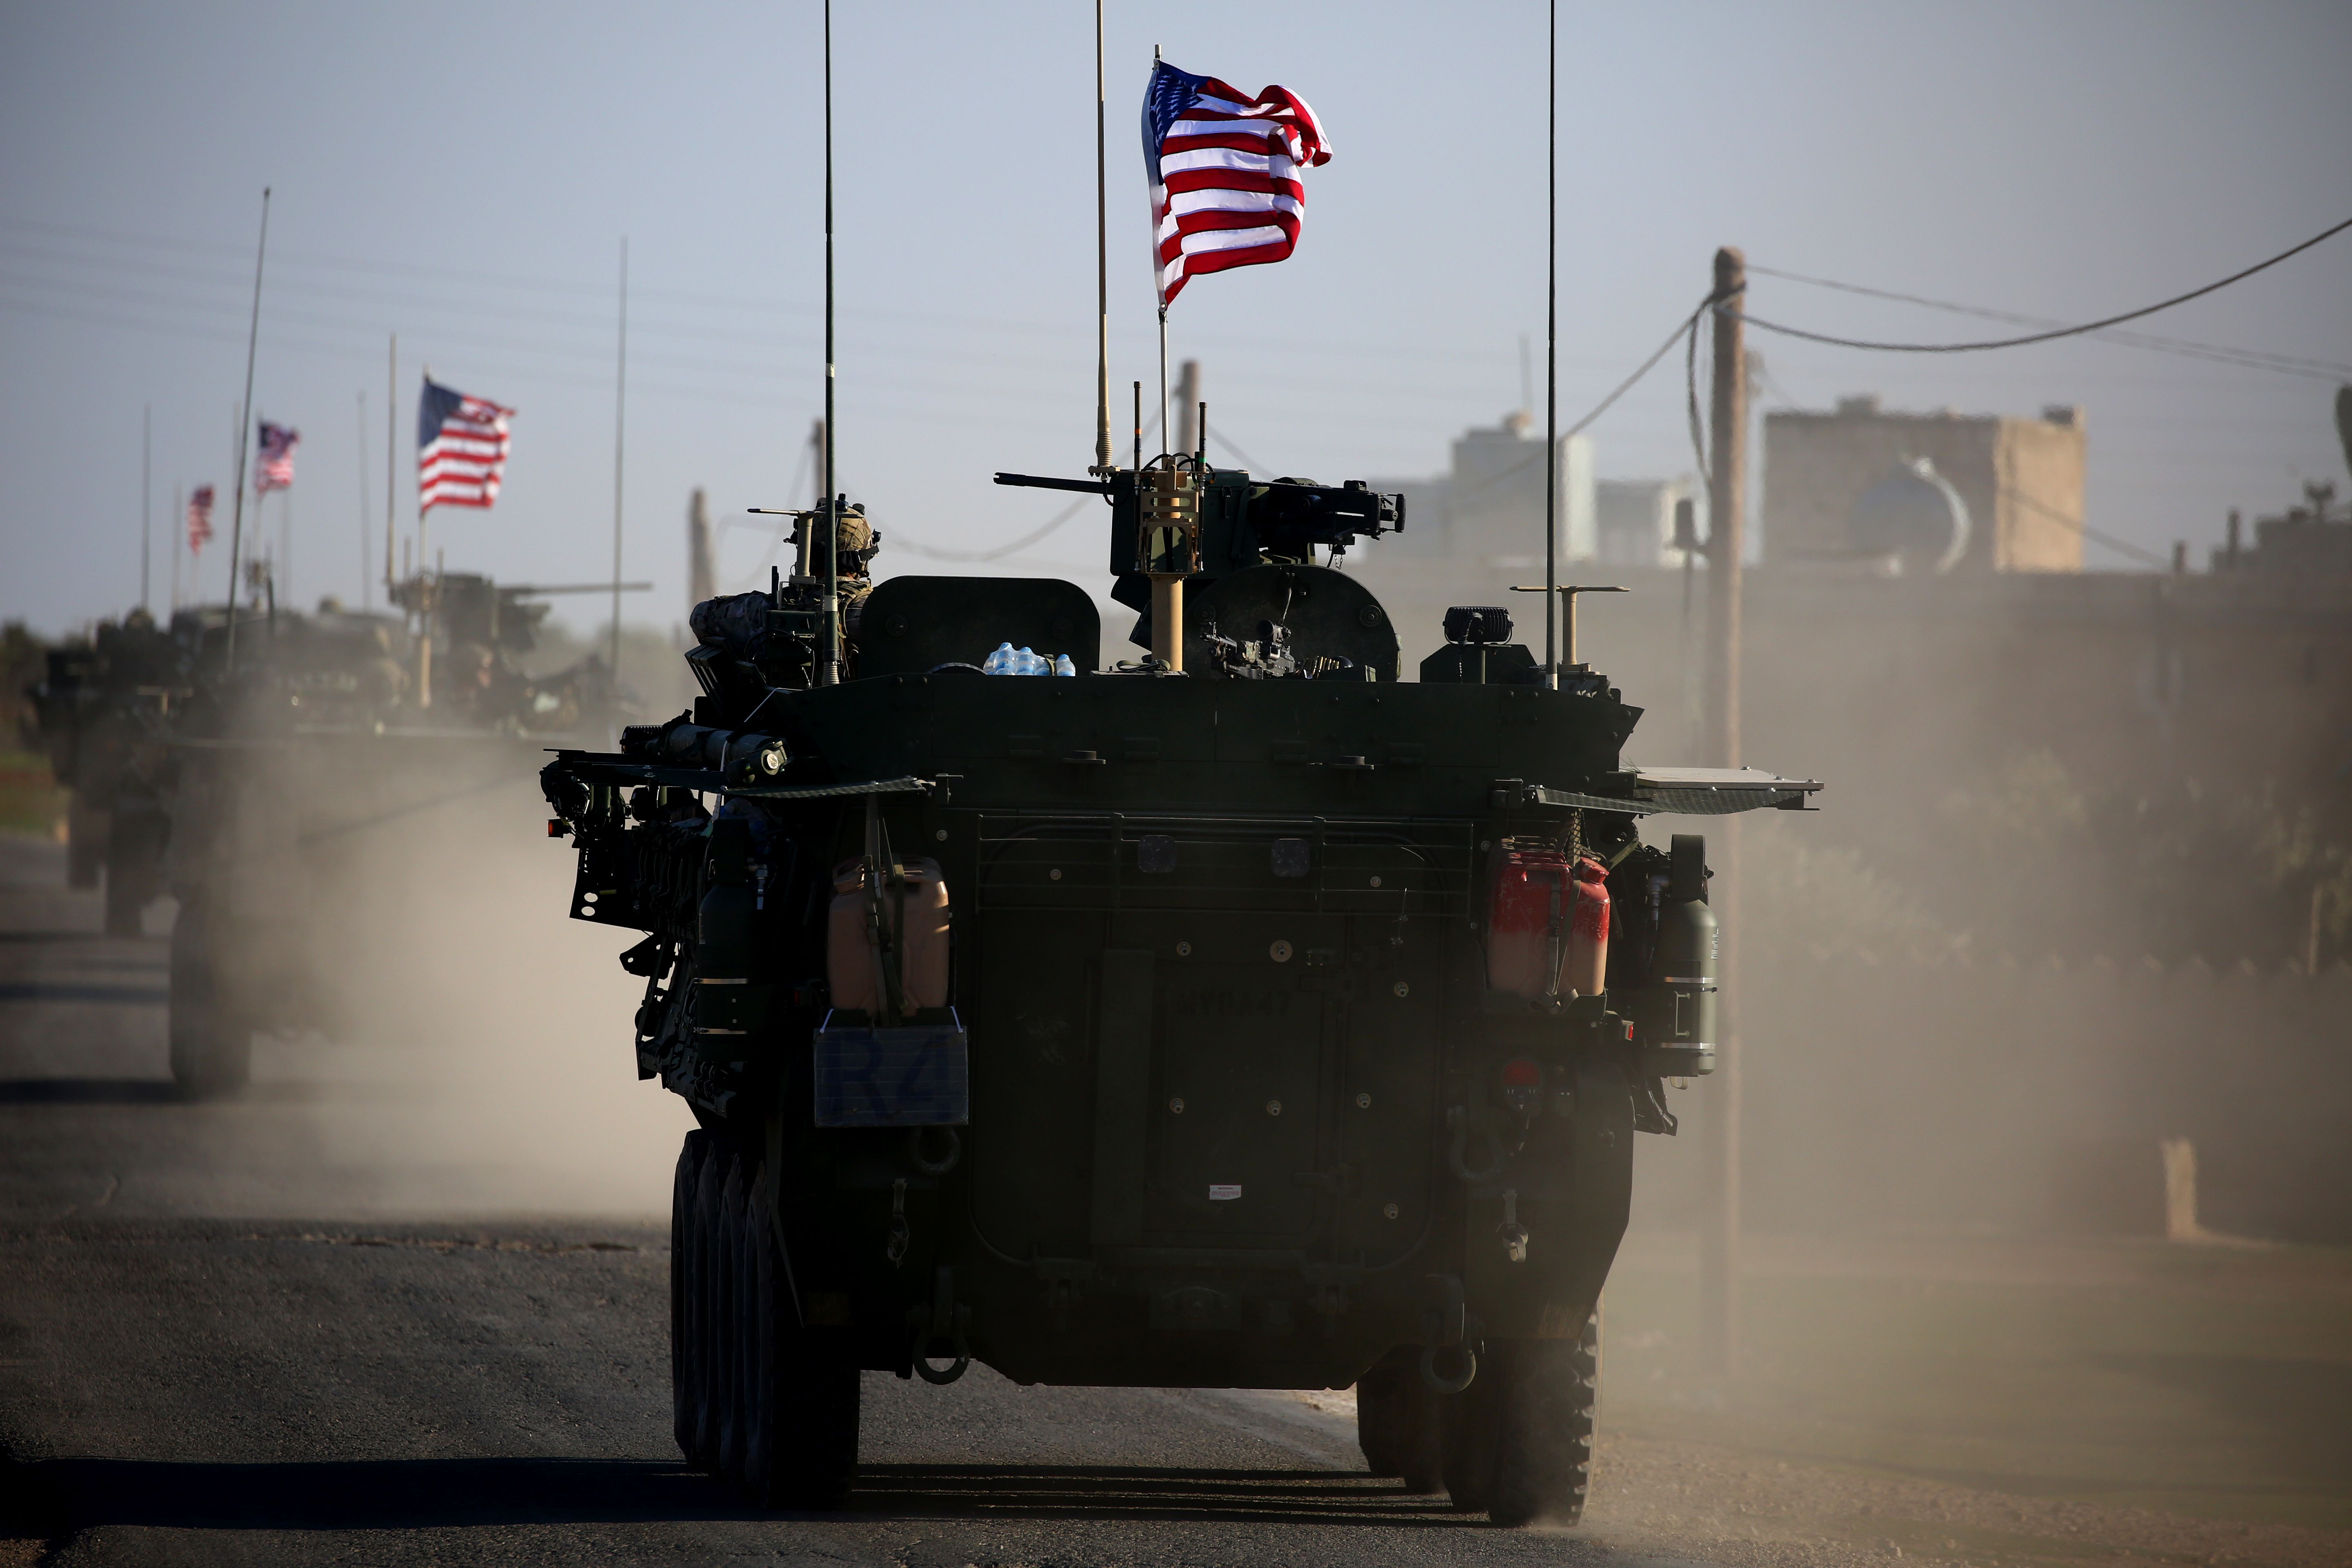 A convoy of U.S. forces armored vehicles drives near the village of Yalanli, on the western outskirts of the northern Syrian city of Manbij on March 5, 2017